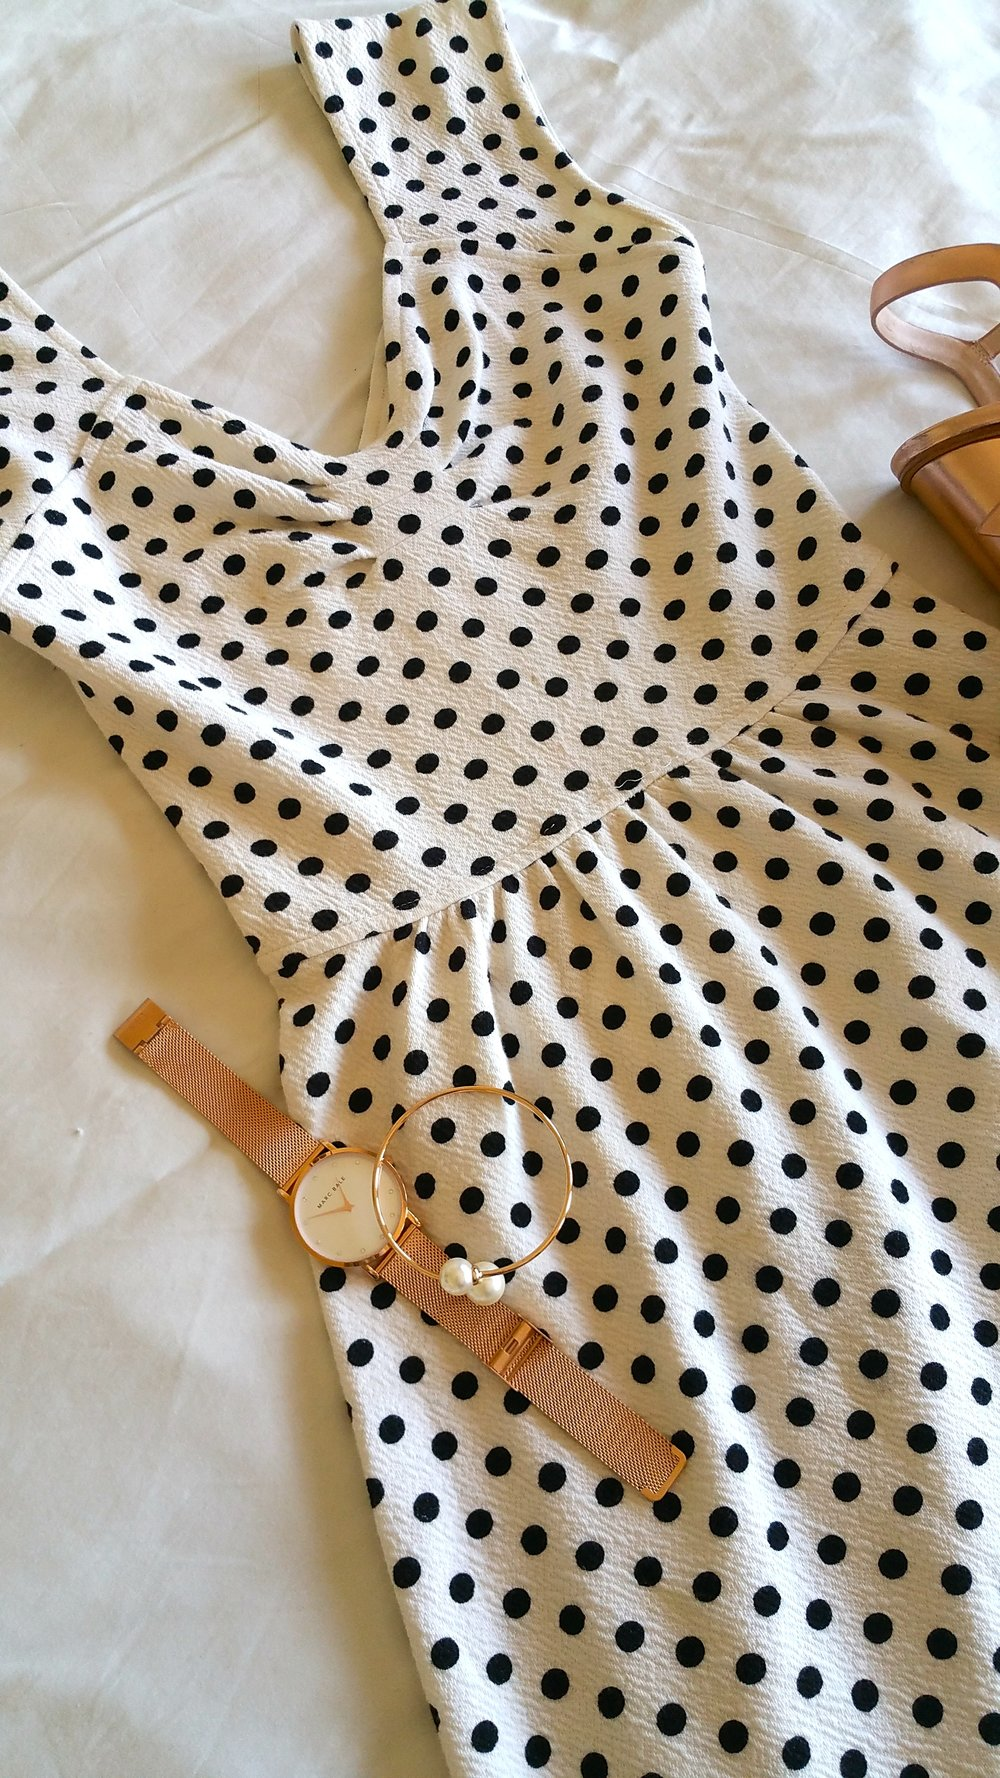 polka-dot-dress-marc-bale-watch